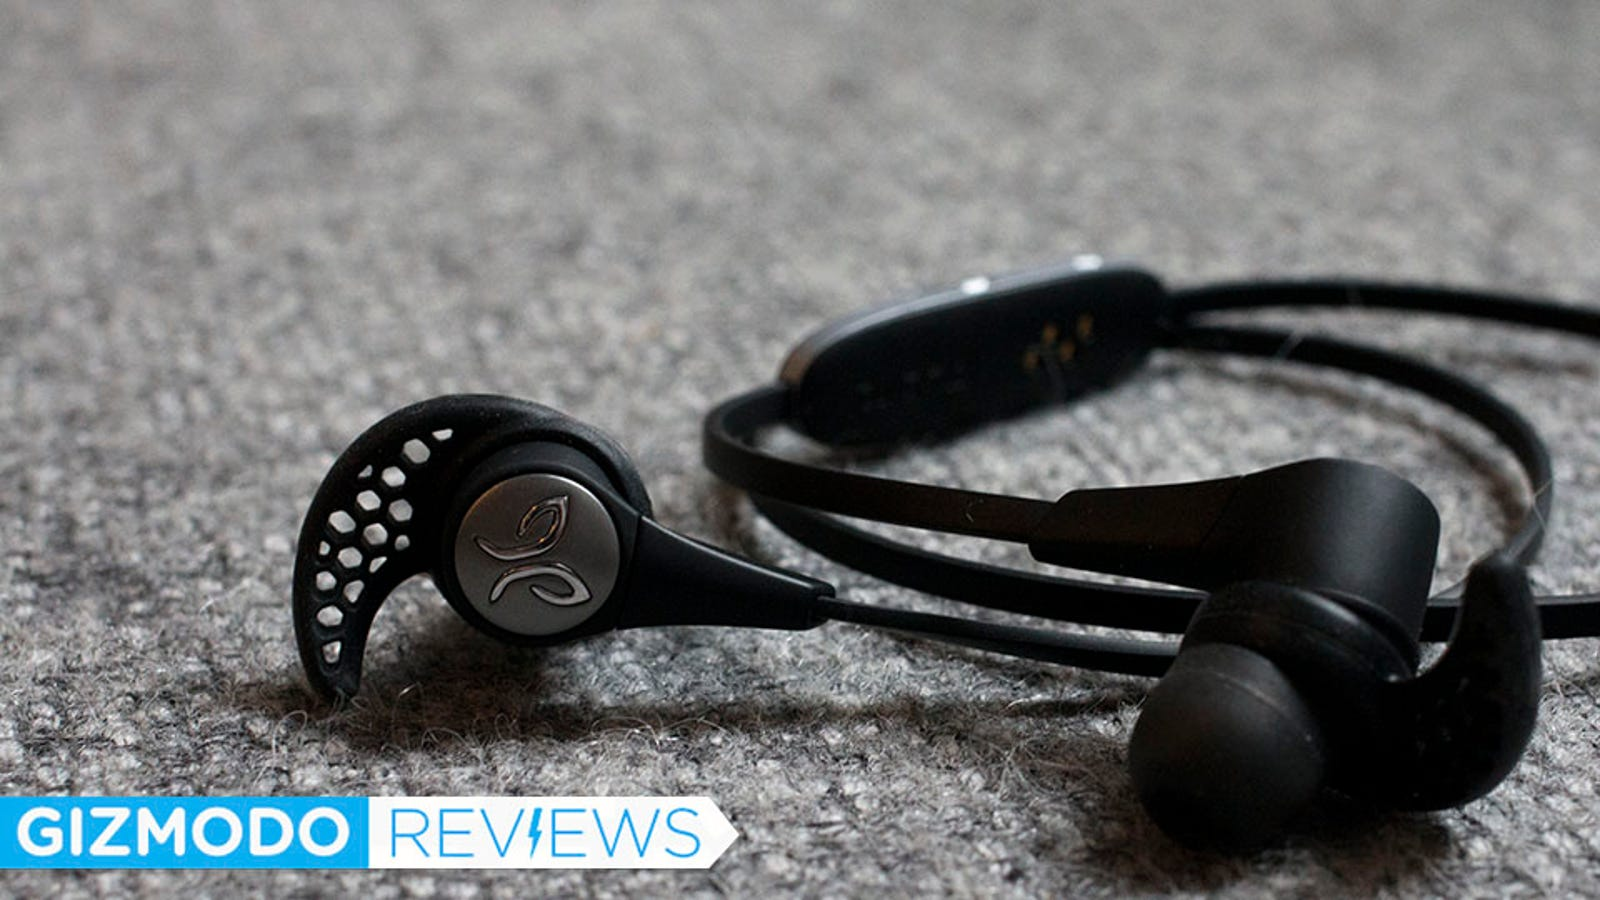 Earbuds teal blue - Jaybird X3 Review: A Wireless Earbud Grows Up